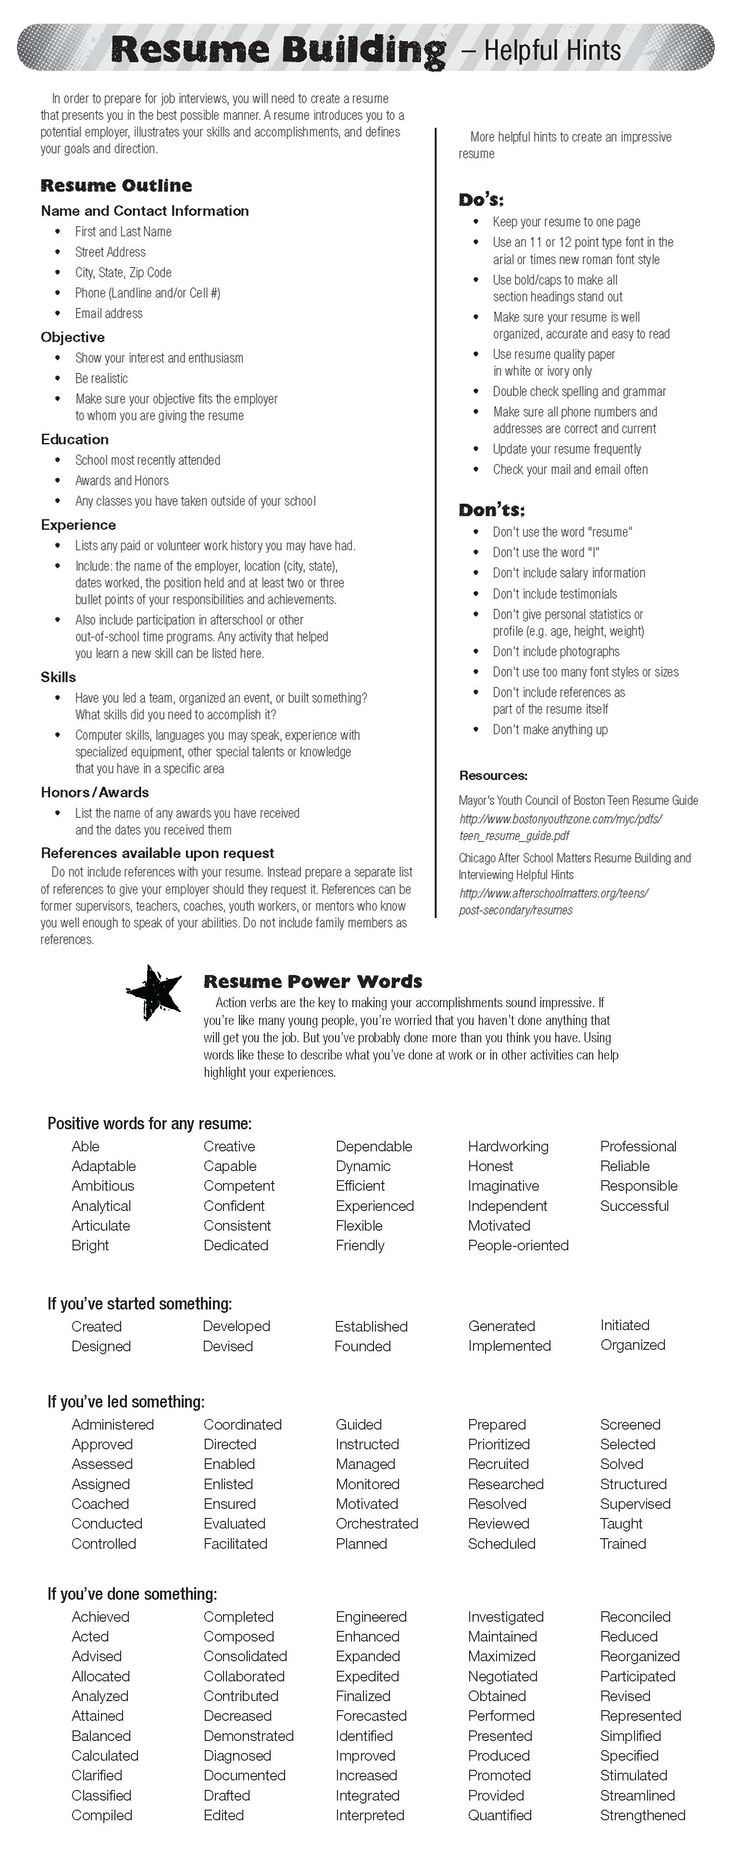 Opposenewapstandardsus  Seductive  Ideas About Resume On Pinterest  Cv Format Resume Cv And  With Great  Ideas About Resume On Pinterest  Cv Format Resume Cv And Resume Templates With Cute Adjunct Faculty Resume Also Outside Sales Representative Resume In Addition Sales Resume Templates And Resume Create As Well As Security Resumes Additionally Information Systems Resume From Pinterestcom With Opposenewapstandardsus  Great  Ideas About Resume On Pinterest  Cv Format Resume Cv And  With Cute  Ideas About Resume On Pinterest  Cv Format Resume Cv And Resume Templates And Seductive Adjunct Faculty Resume Also Outside Sales Representative Resume In Addition Sales Resume Templates From Pinterestcom